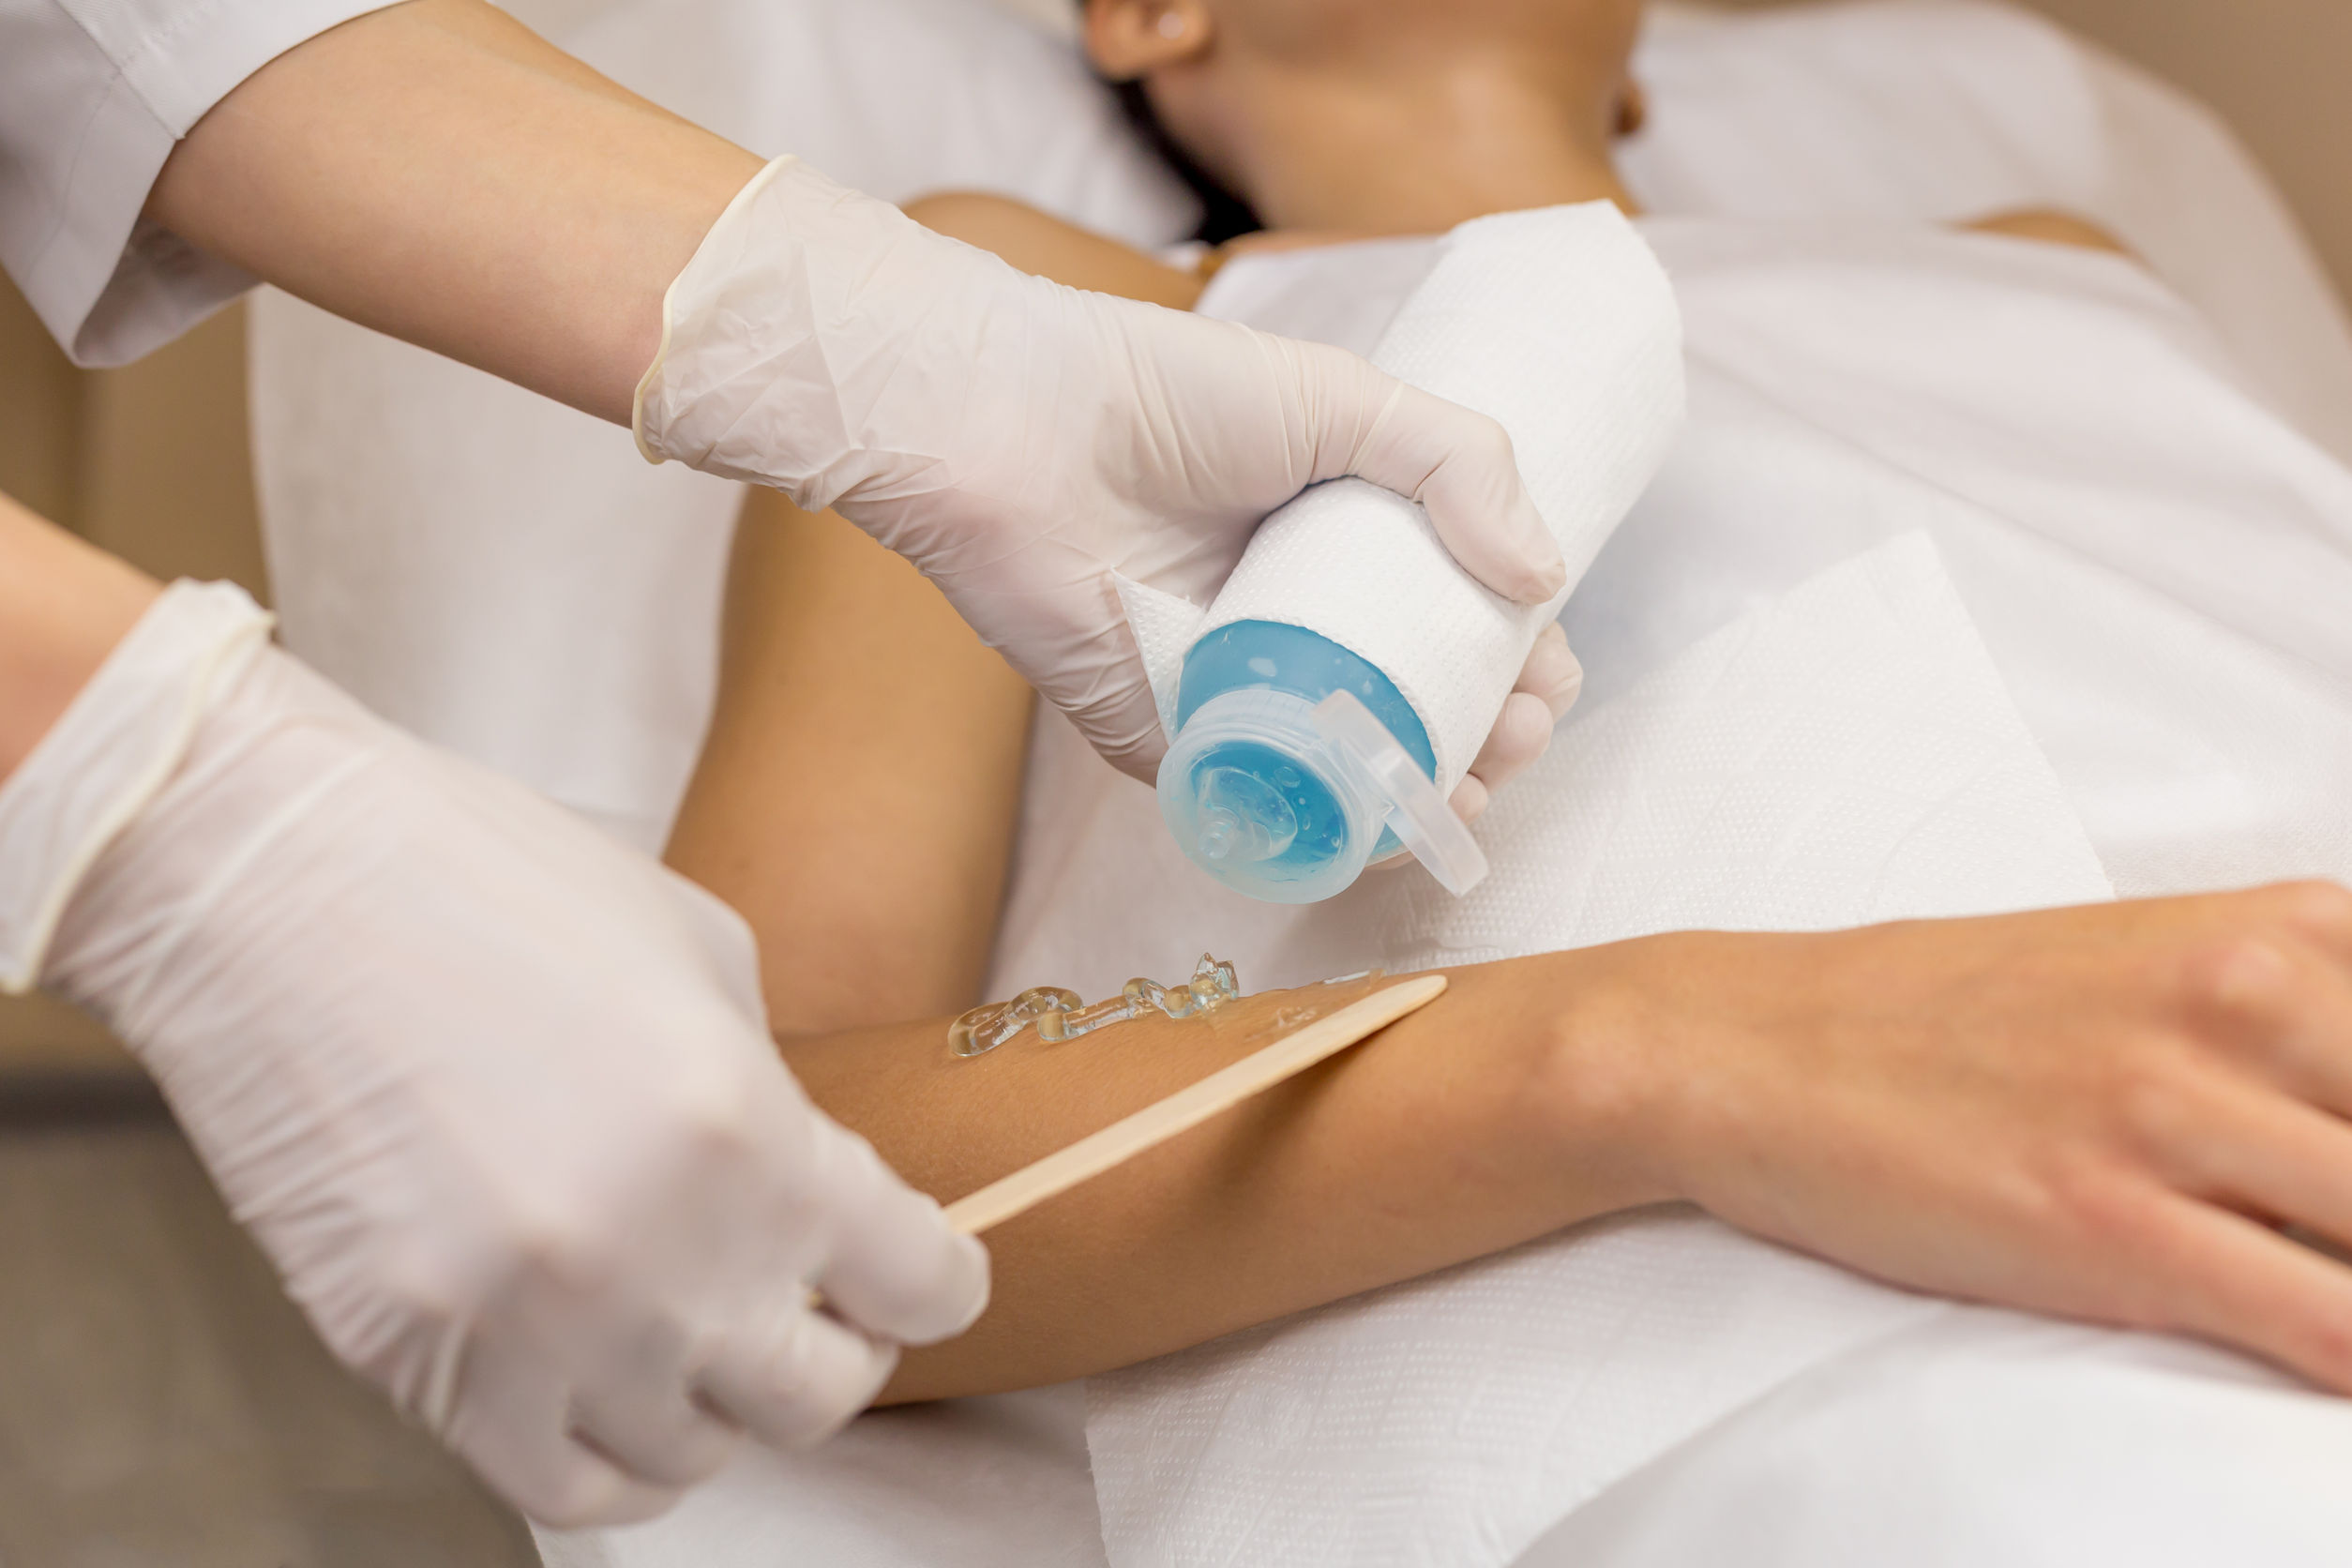 47688233 - close up cooling gel for laser hair removal put on client hand with wooden spatula. client lies on table in white towel. beautician in white sterile gloves.